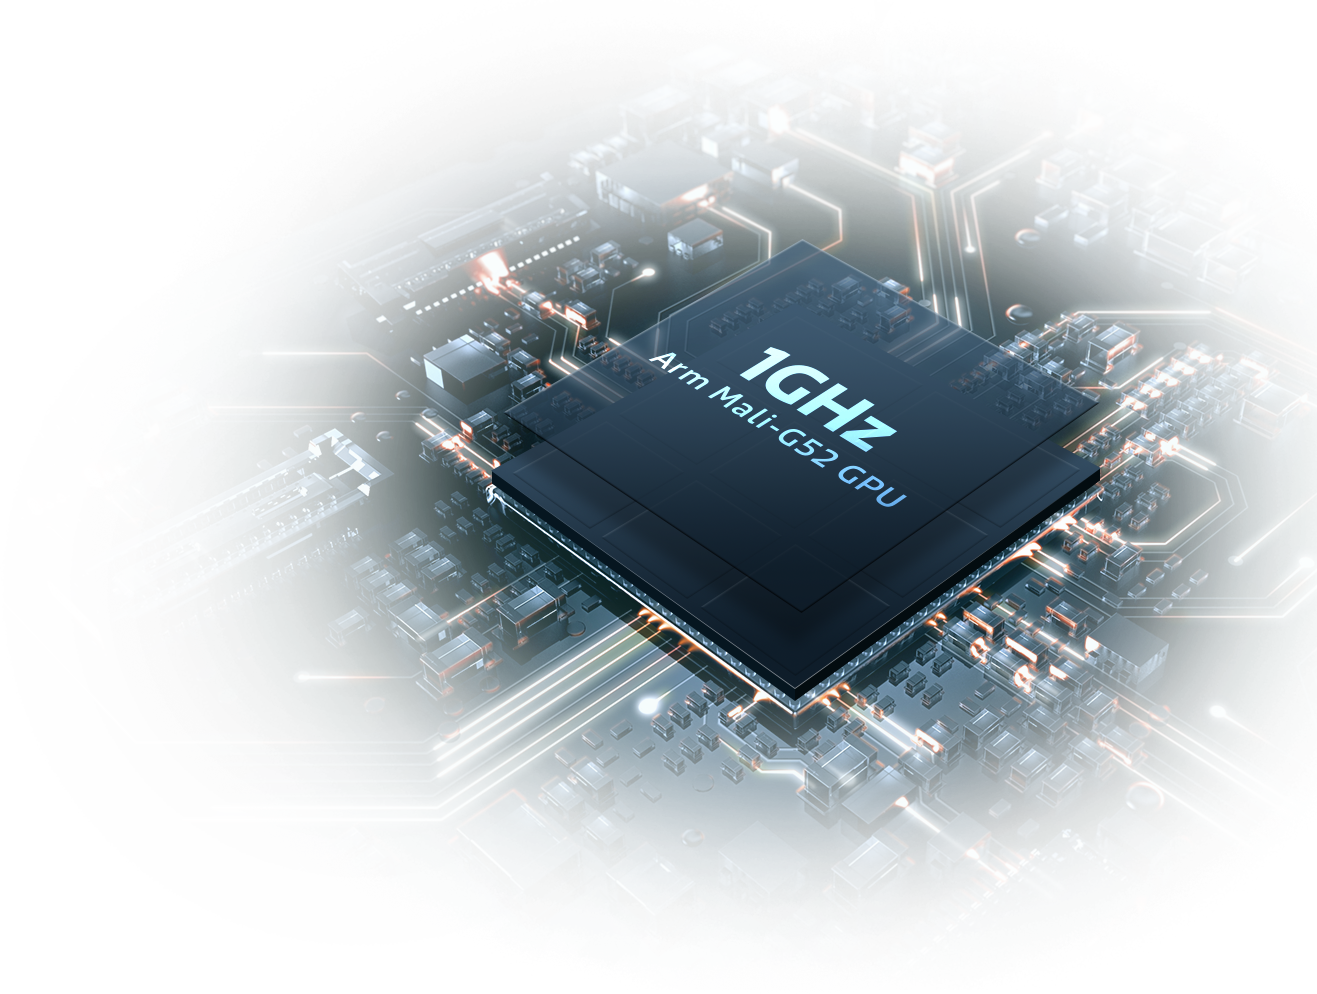 Pumped Up Gaming chipset